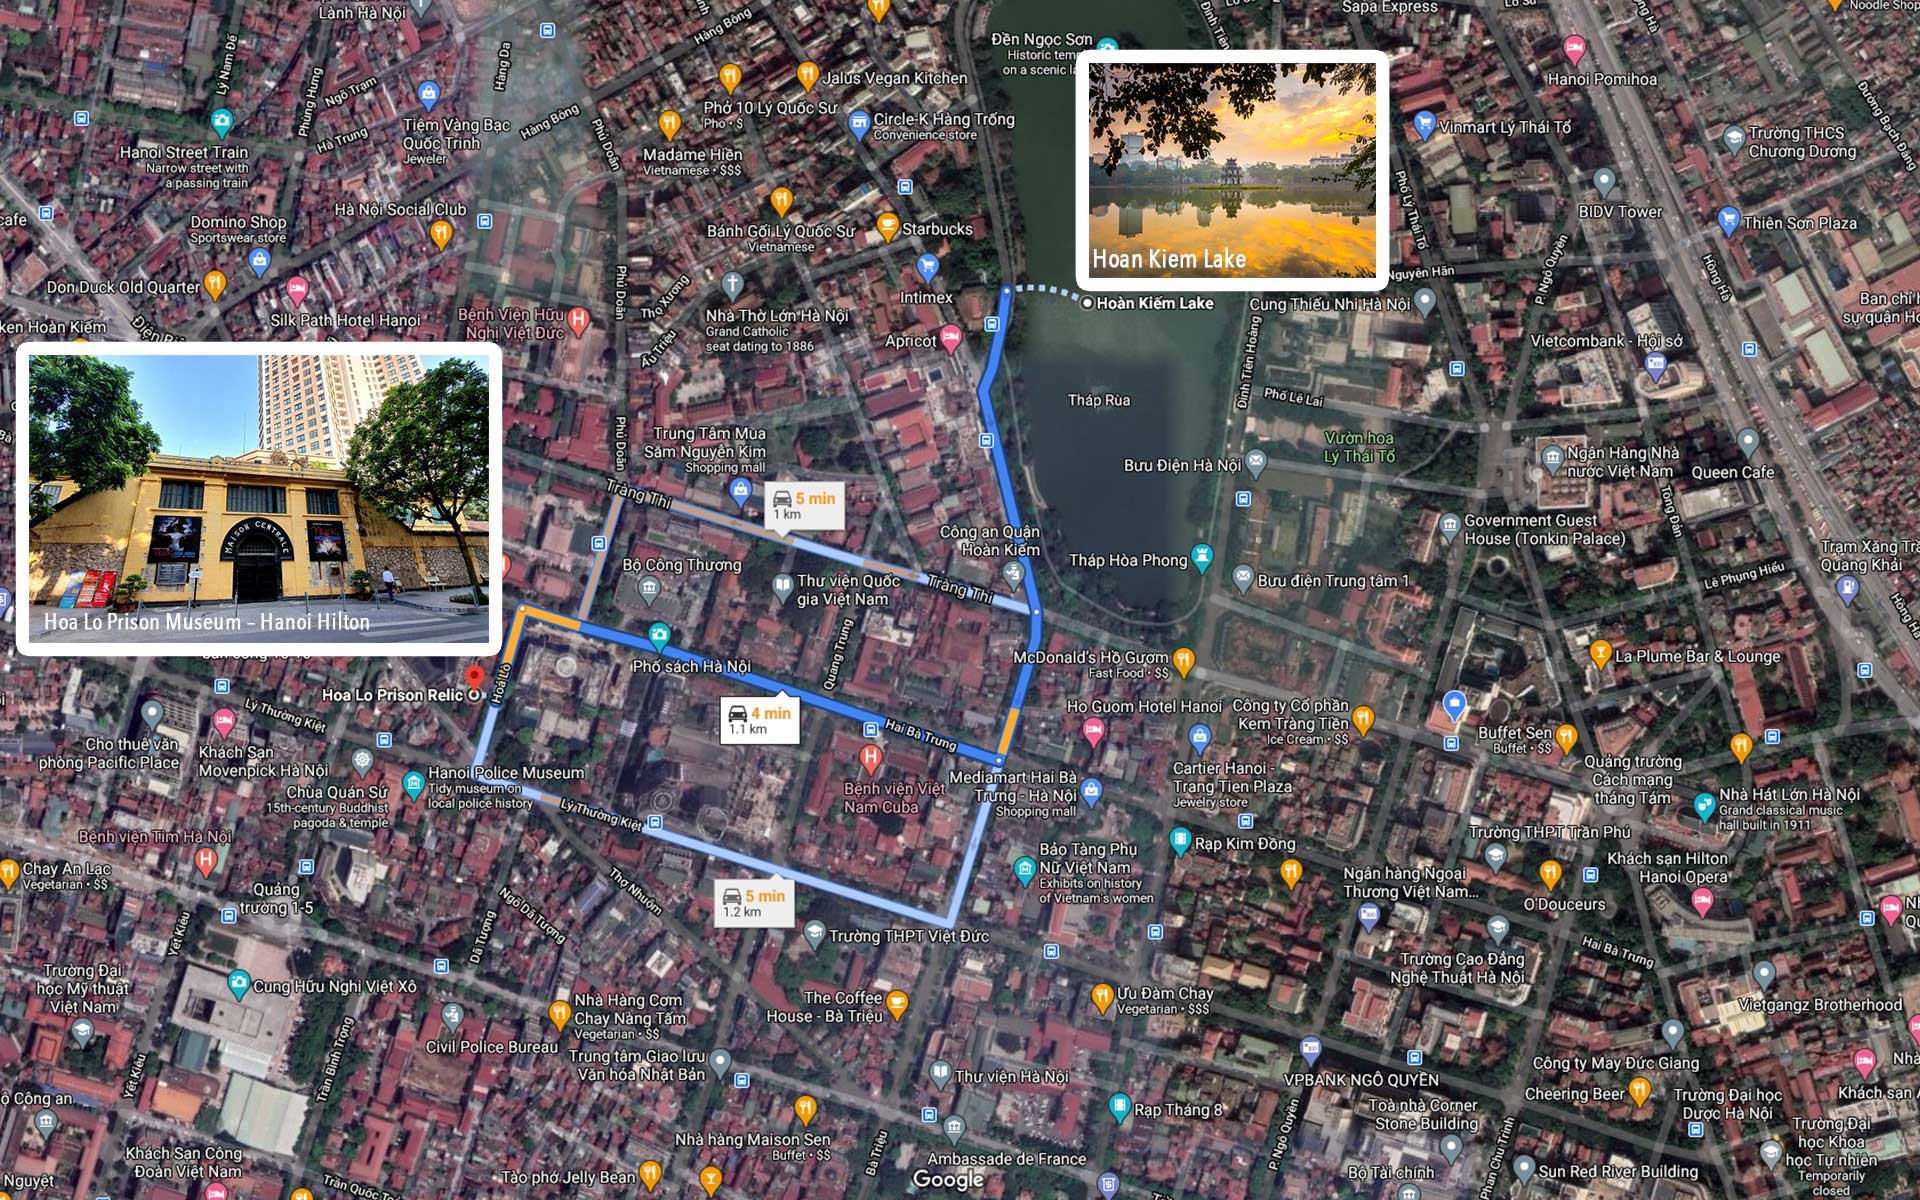 Map of Hanoi Hilton and How to get from Hoan Kiem lake to Hoa Lo Prison